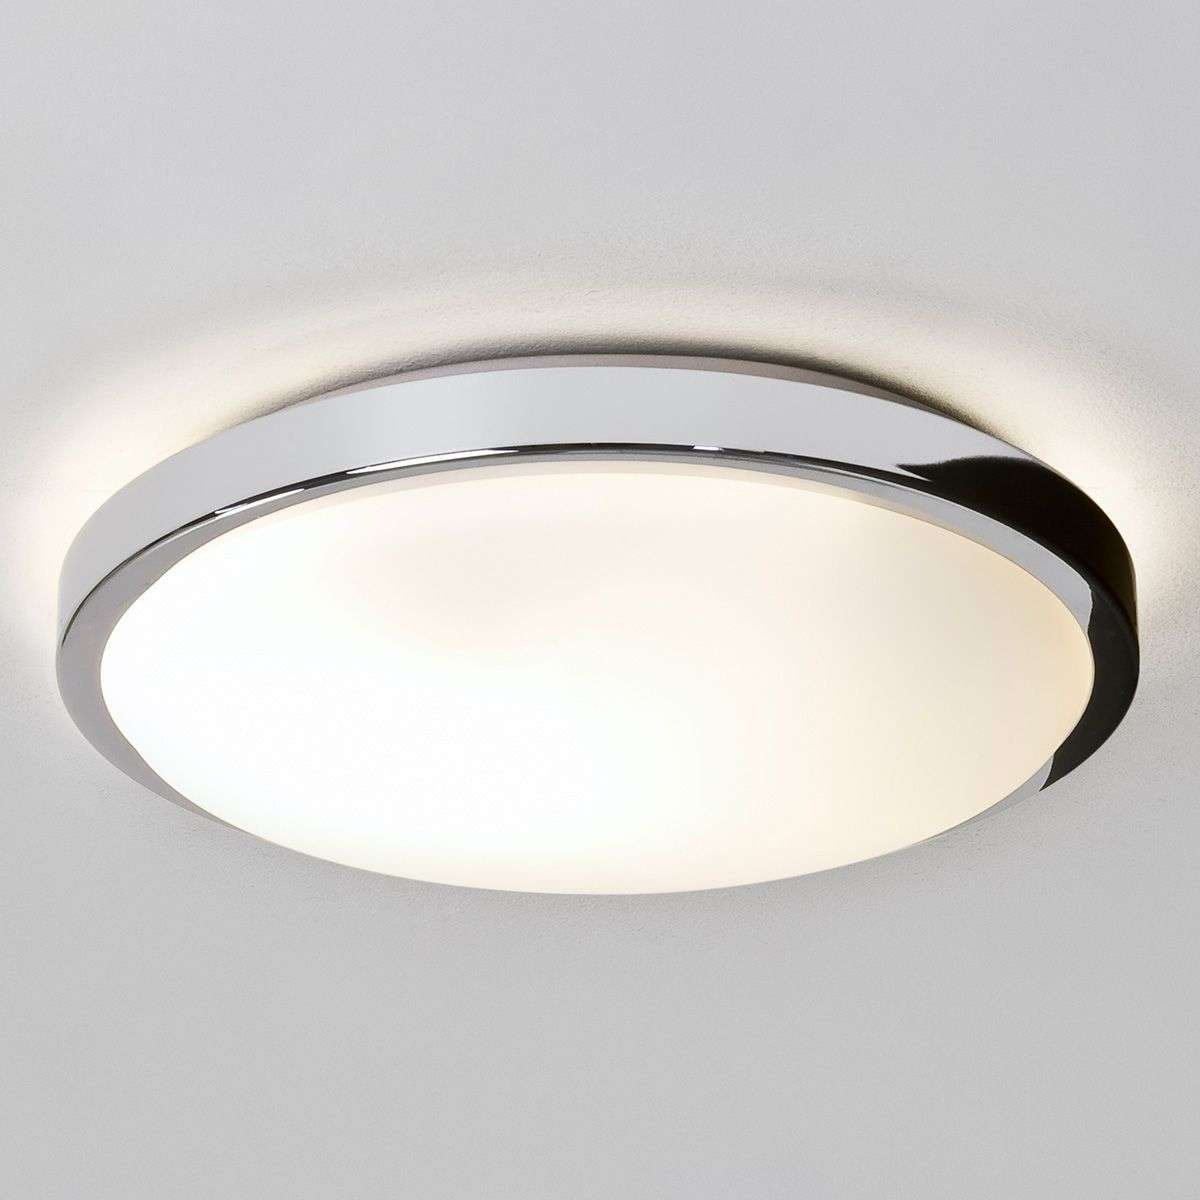 Denia Bathroom Ceiling Light IP44-1020086-32